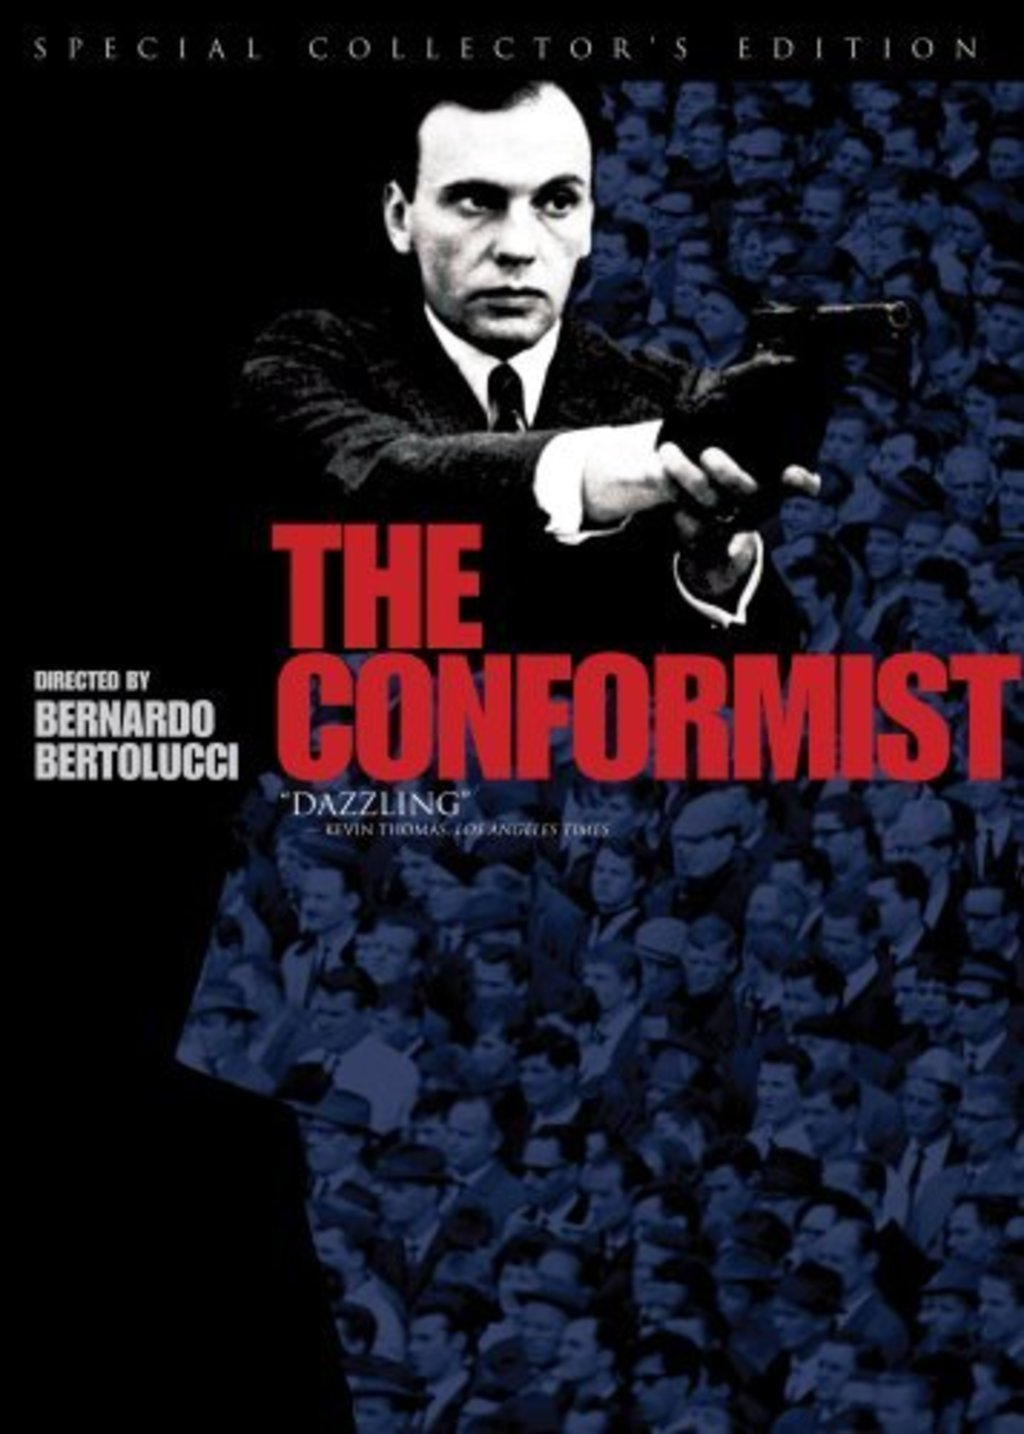 life as a conformist A non-conformist is anyone who does not comply with normal societal standards of behavior the civil rights movement of the 1960s is one of the most well-known examples of non-conformity king and other civil rights leaders went against social conventions by arguing that black americans deserved the same rights as whites.